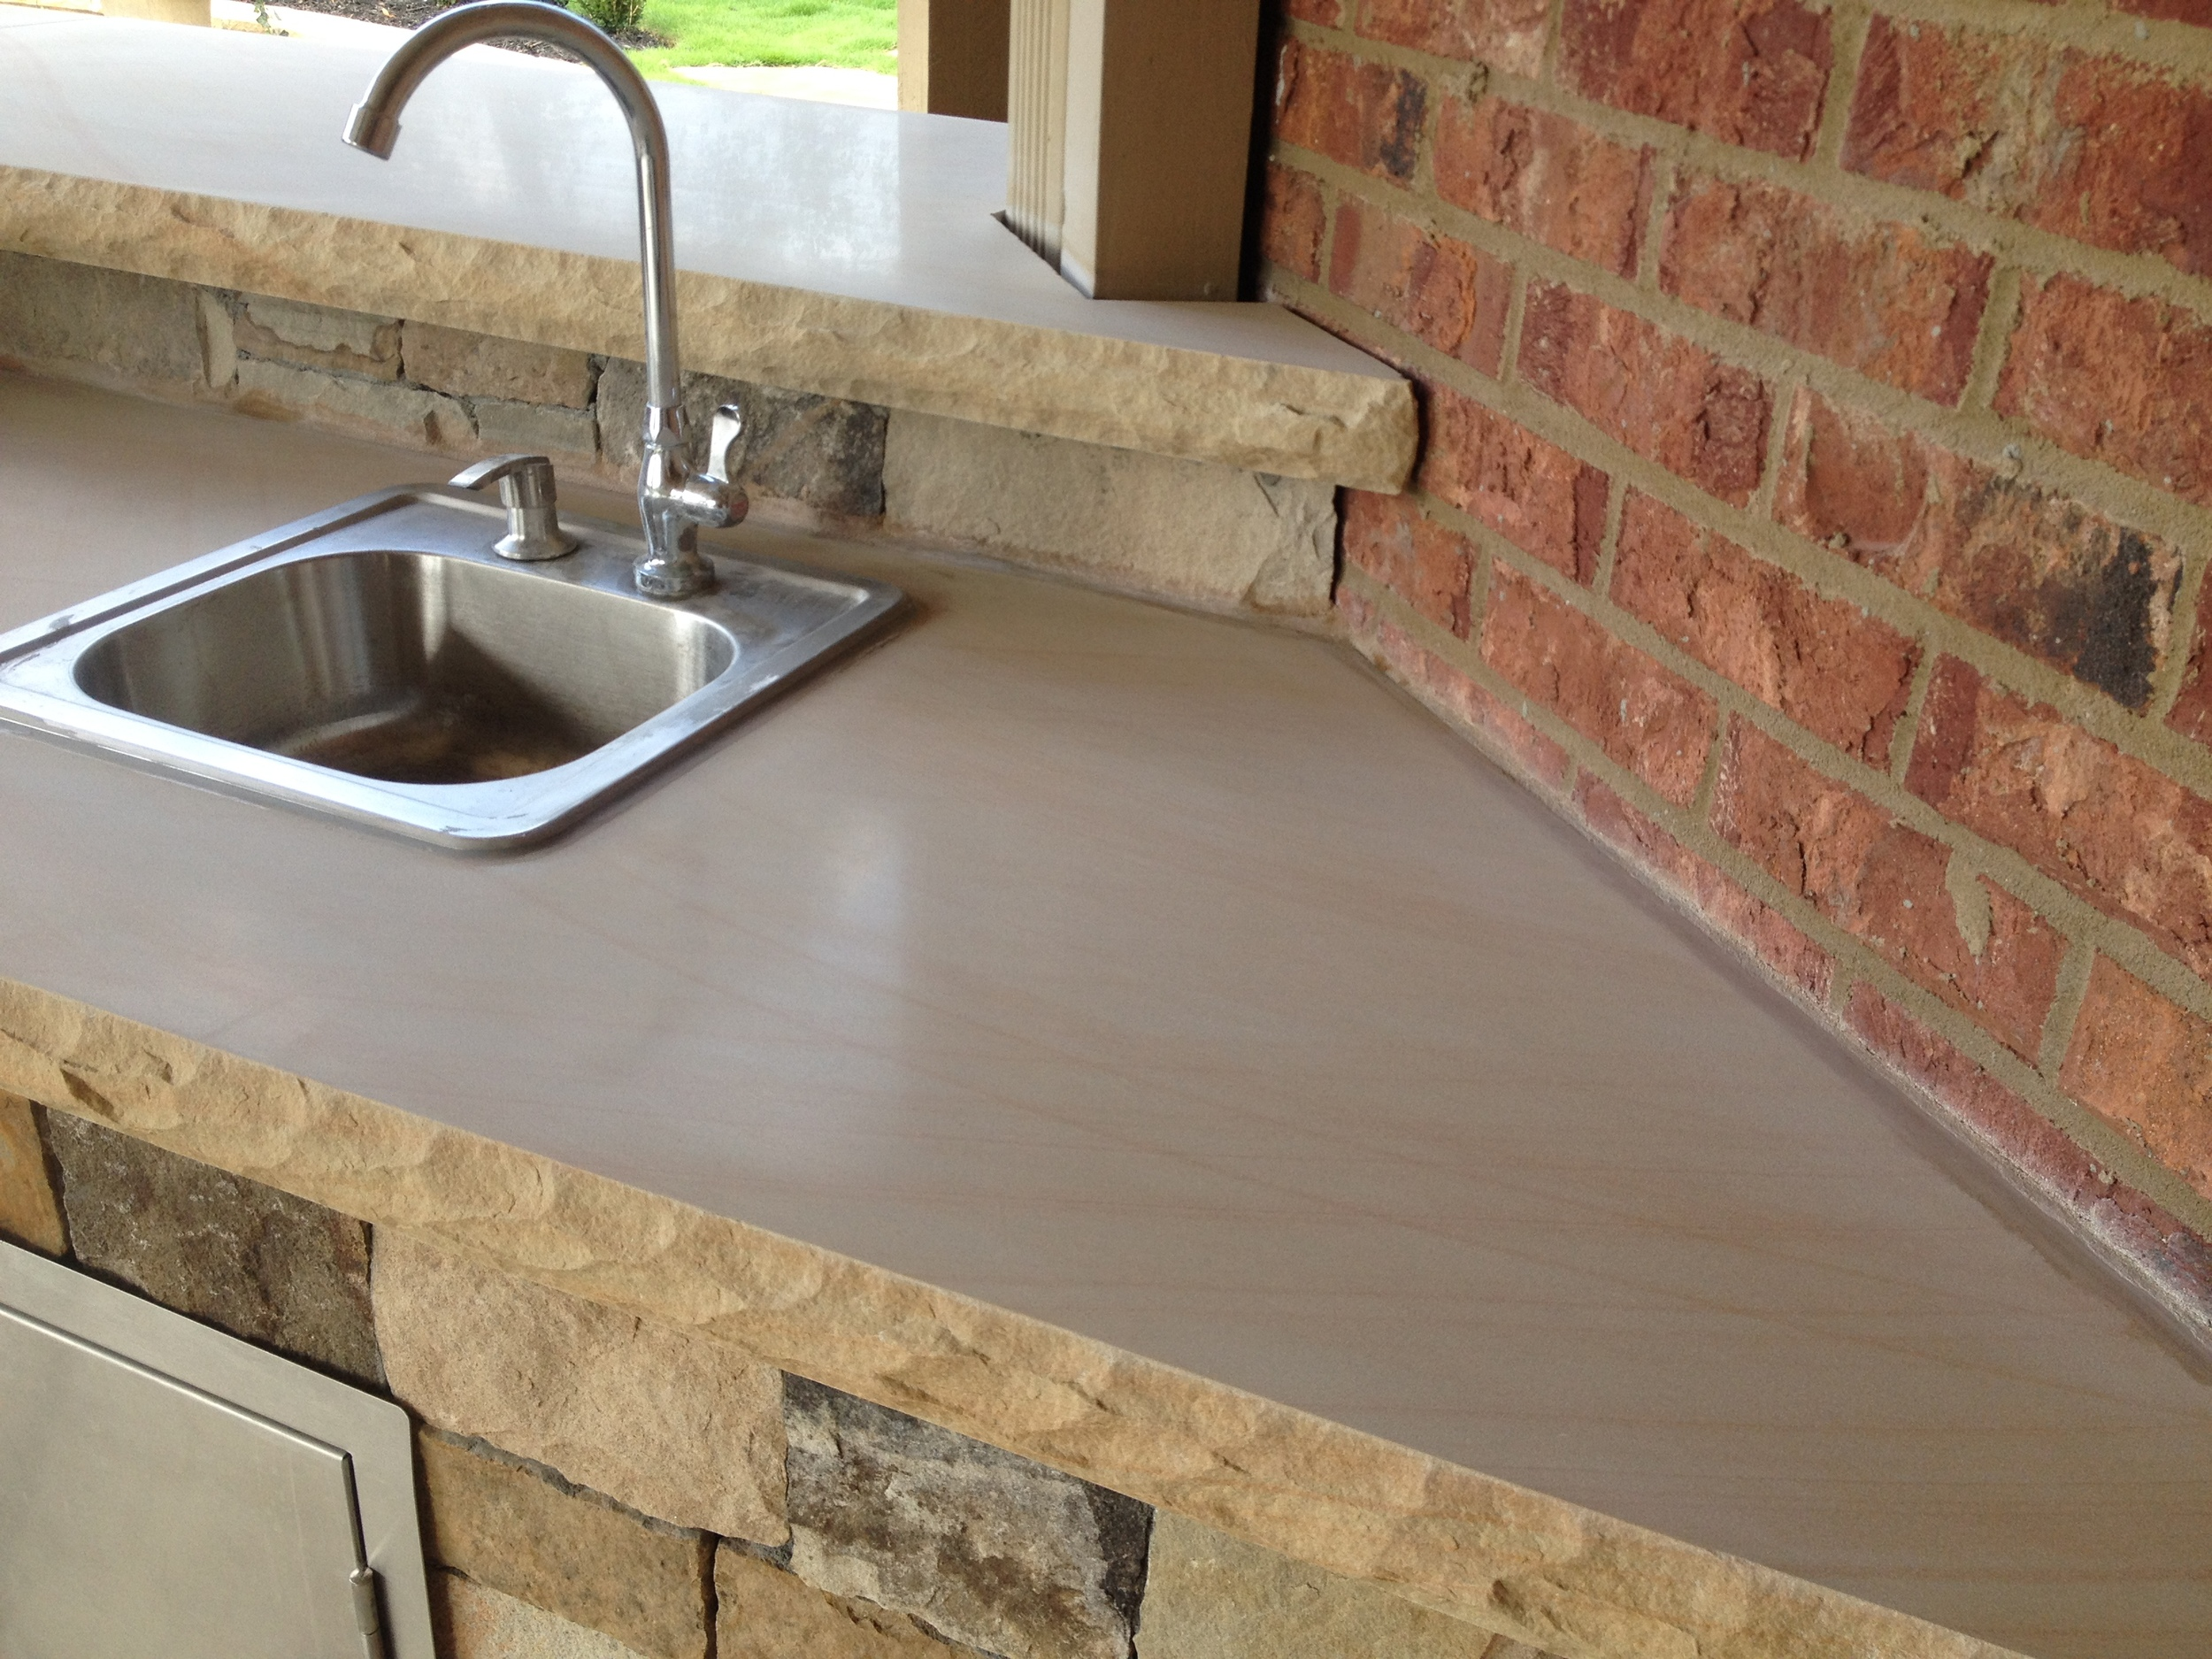 Image of Sink on Polished Sandstone Counter-Top